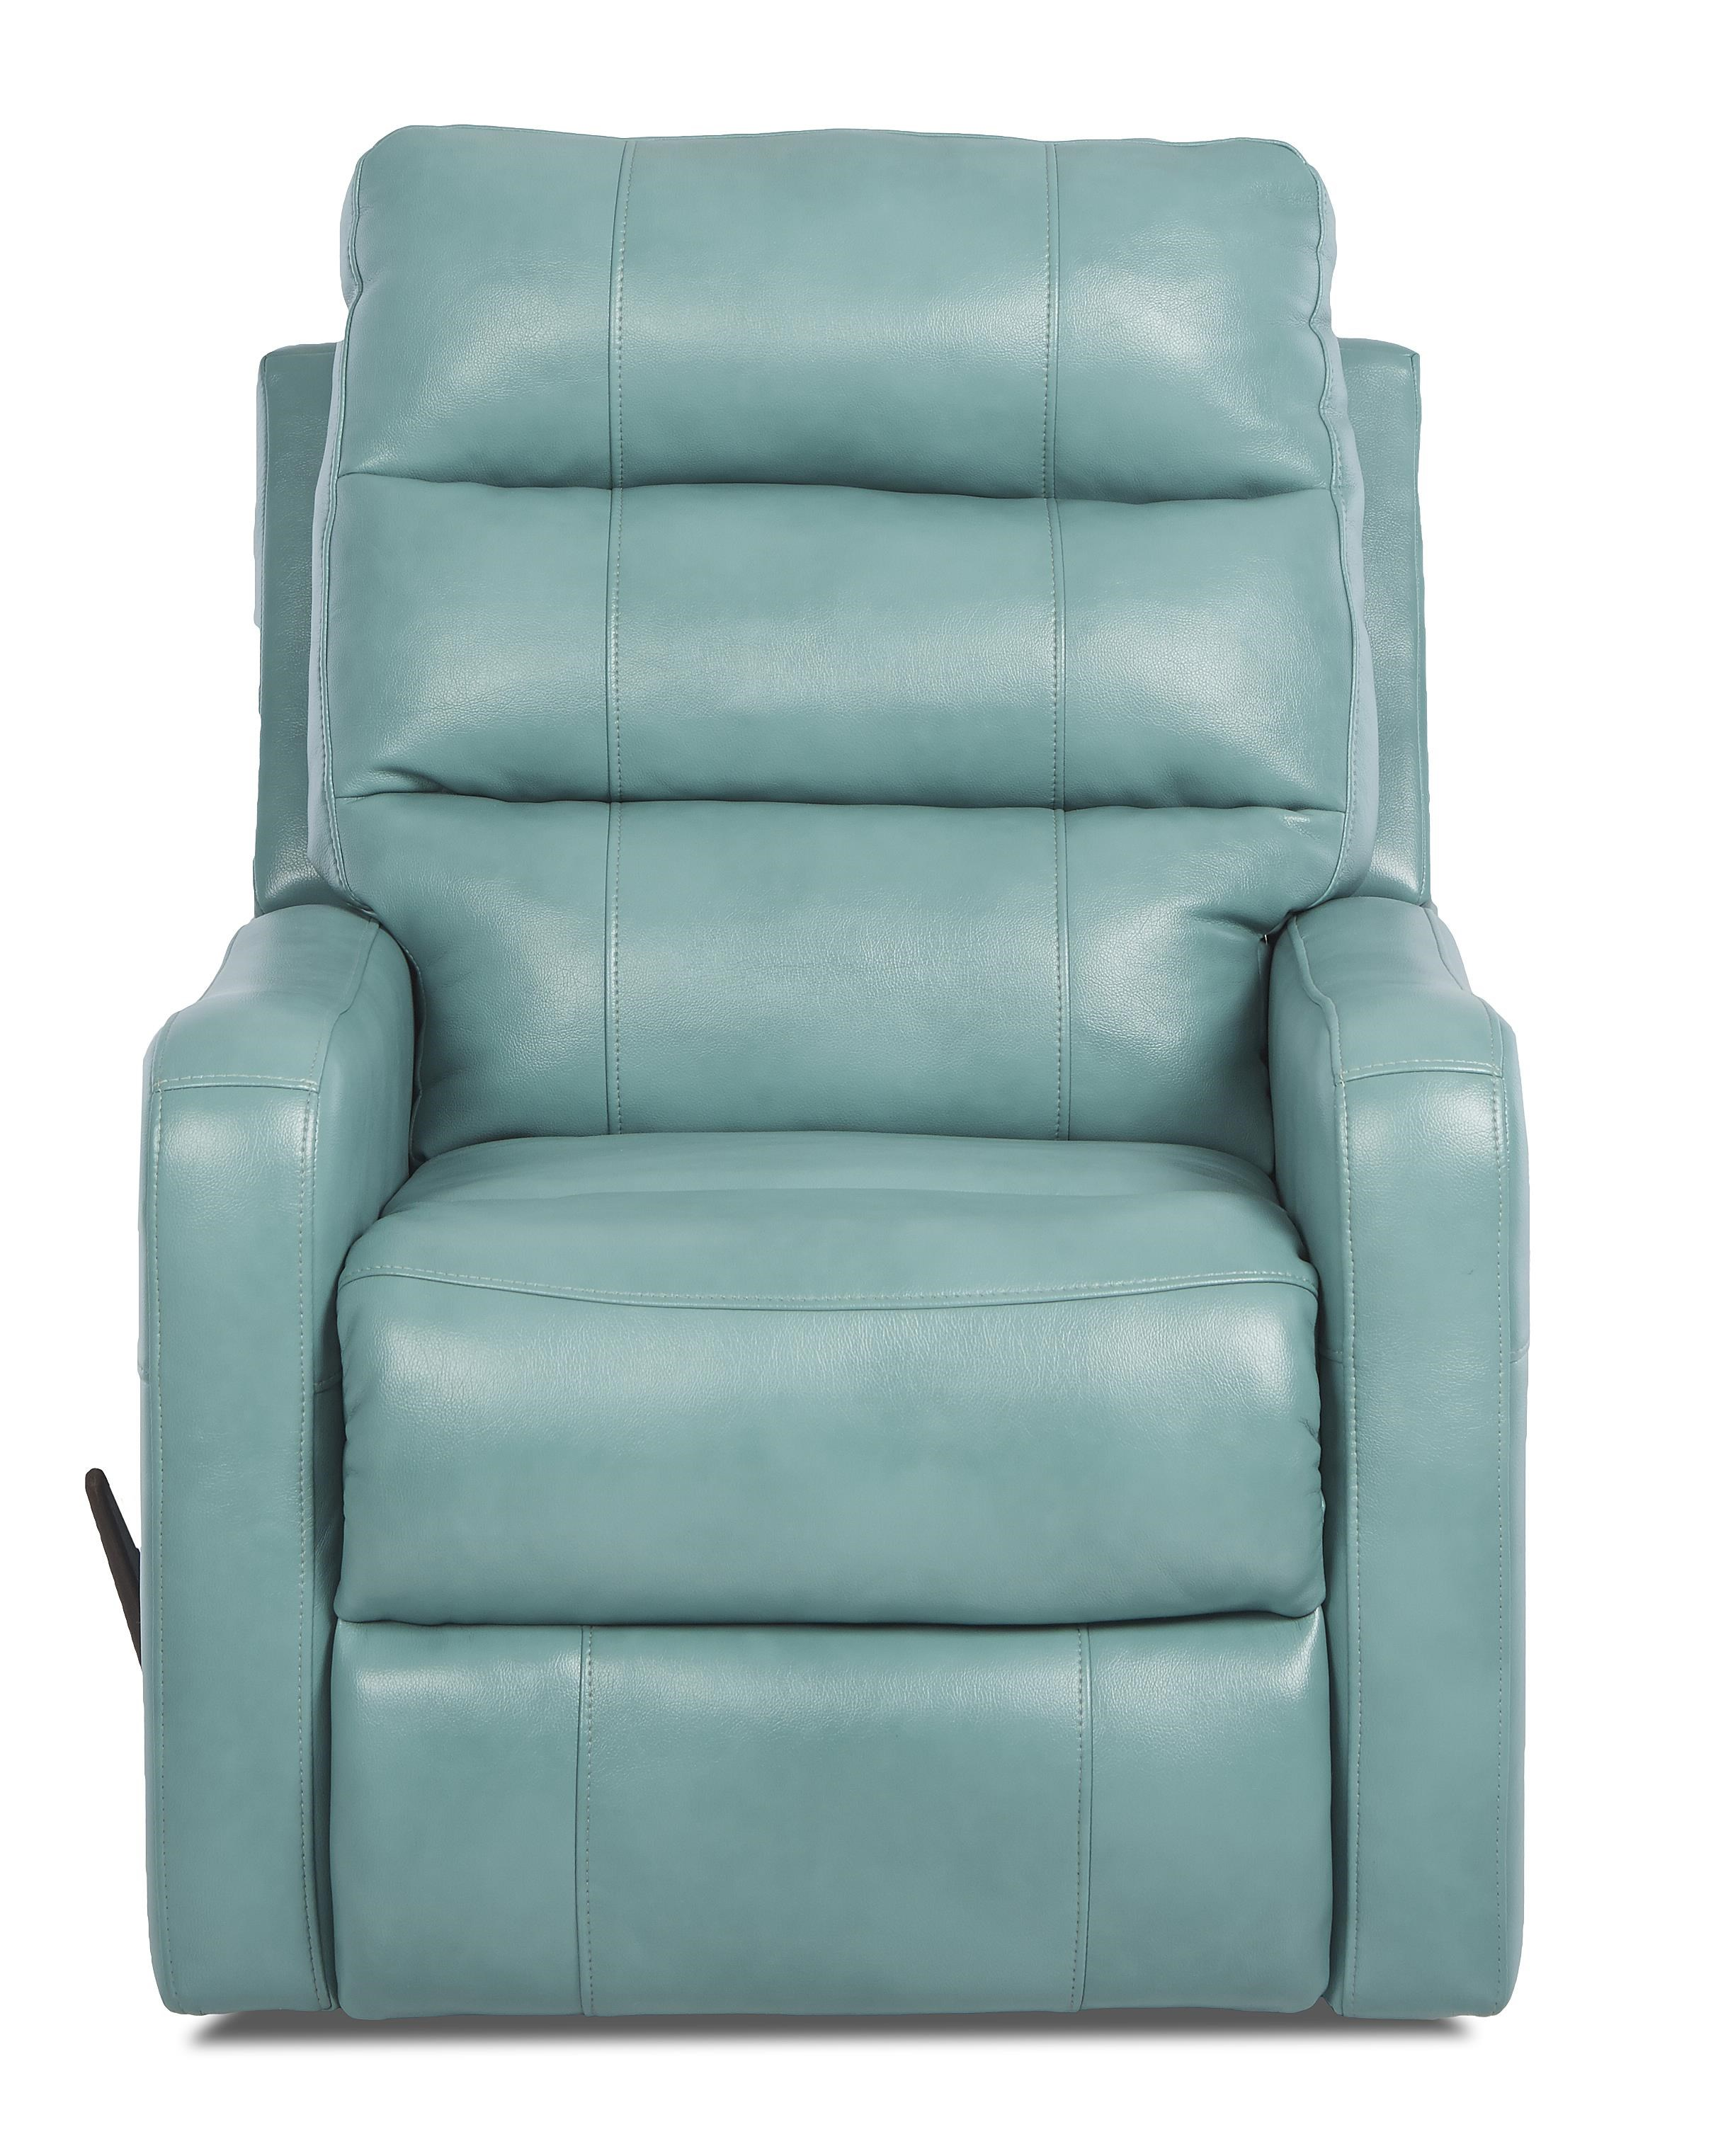 Klaussner Striker Contemporary Power Rocking Reclining Chair  sc 1 st  Wayside Furniture & Klaussner Striker Contemporary Power Rocking Reclining Chair ... islam-shia.org